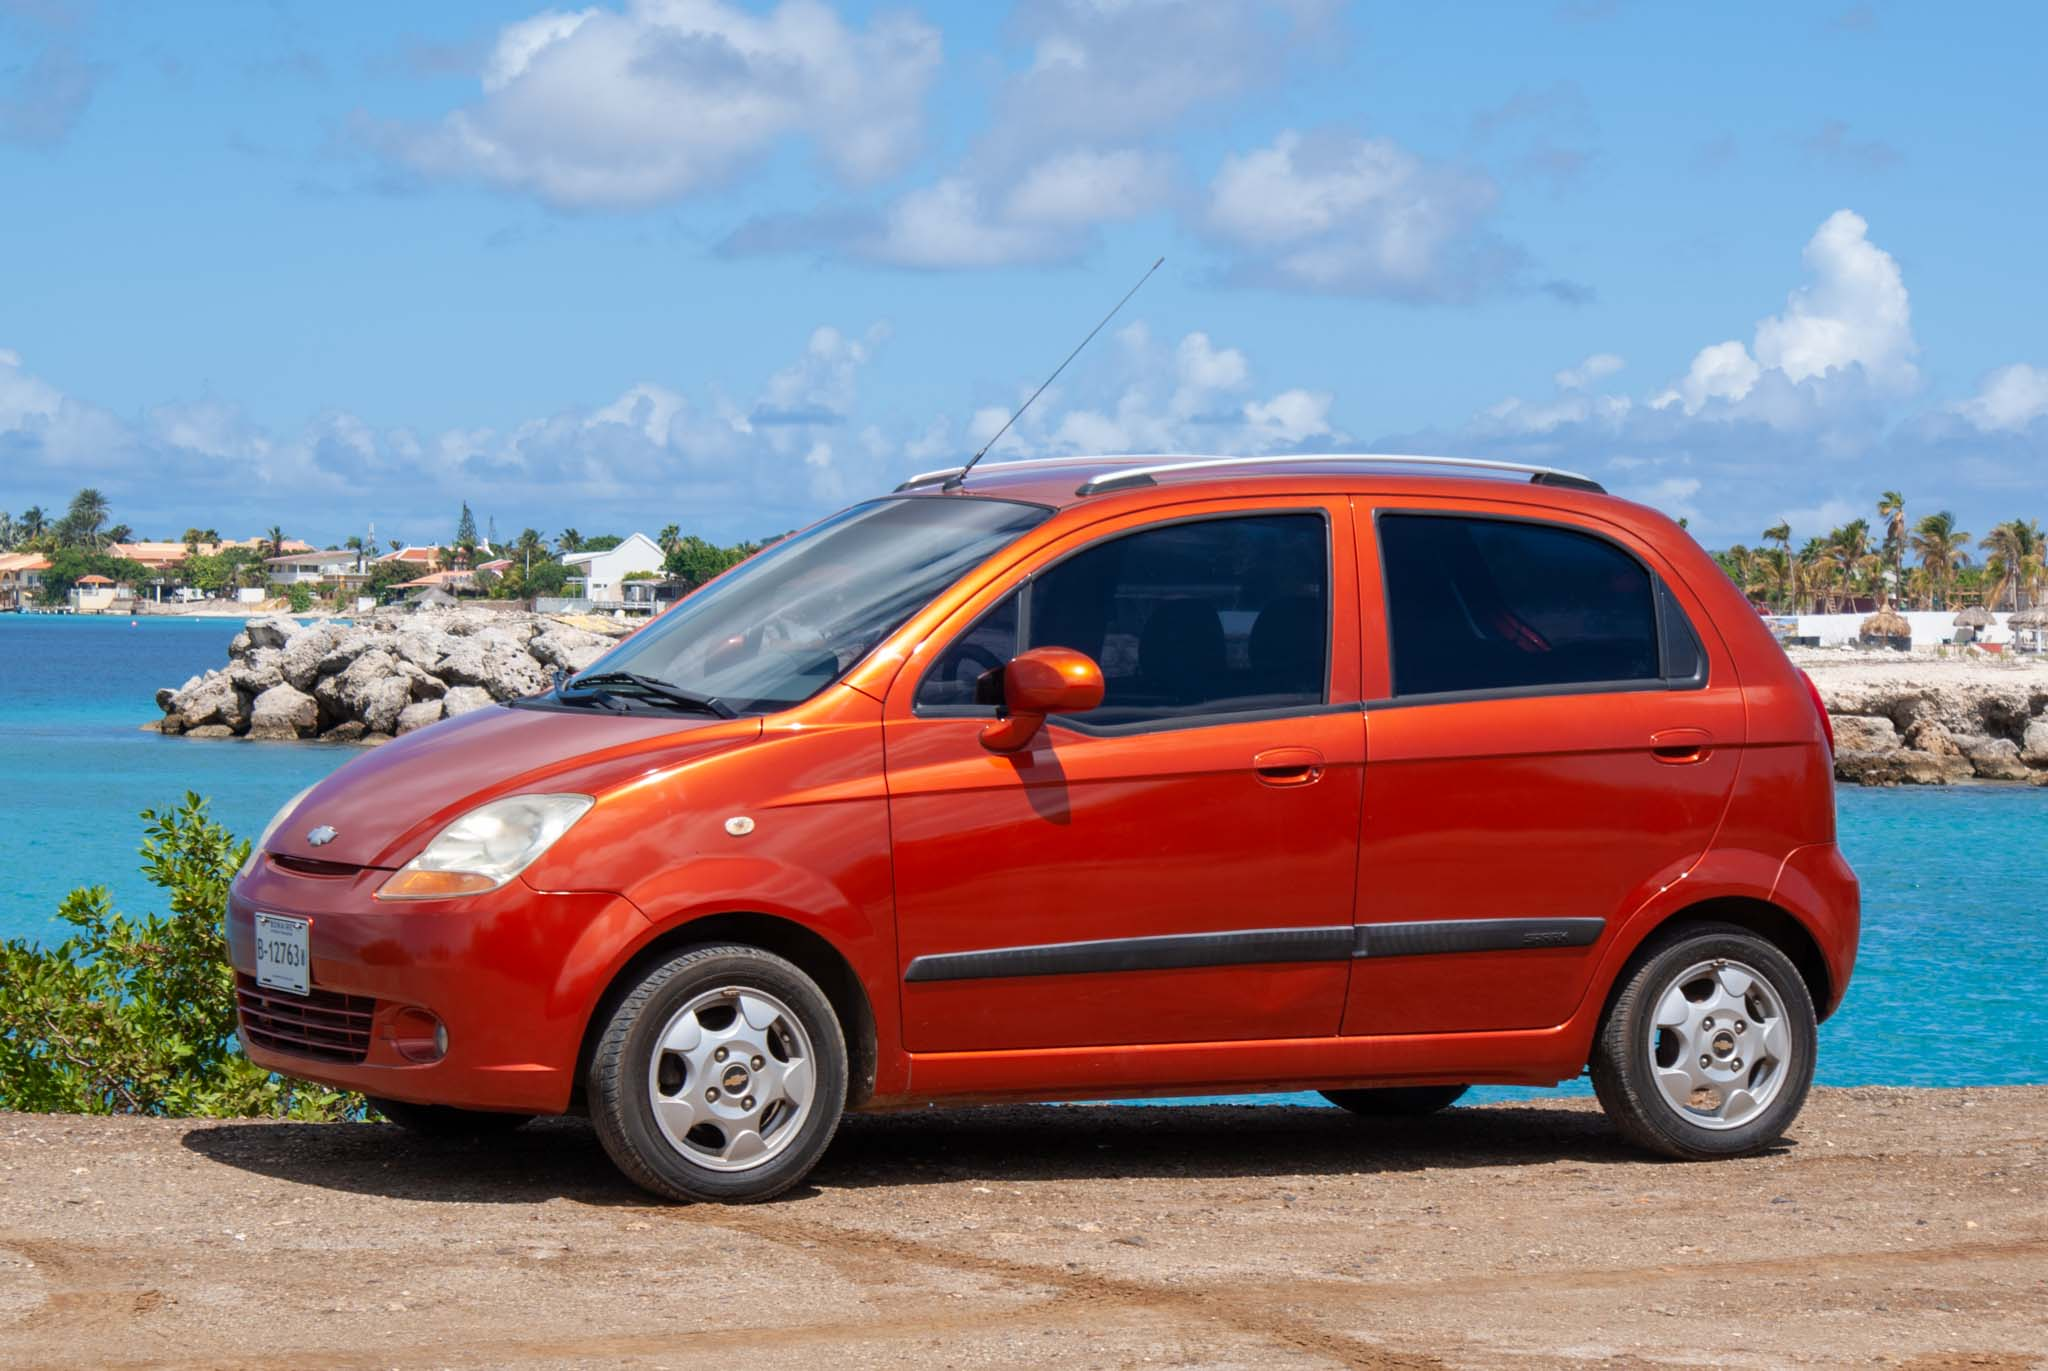 Tropical car rental Bonaire- Chevrolet Spark orang